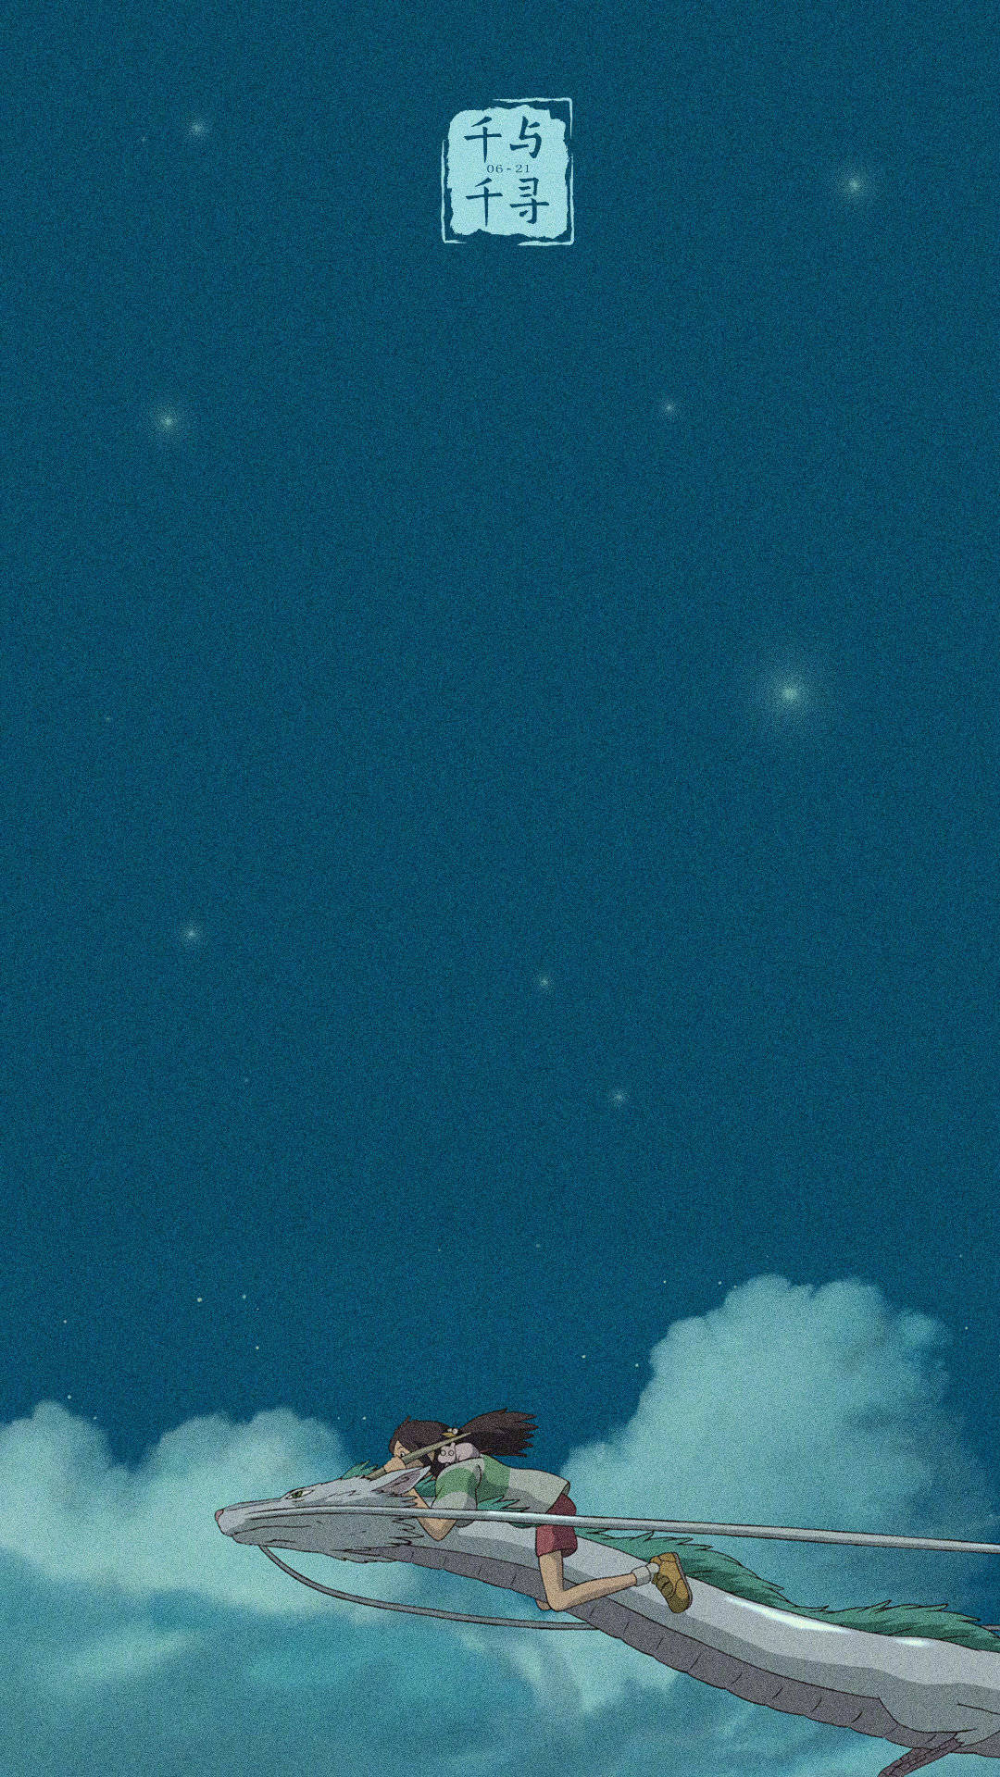 Wallpaper Spirited_Away 千と千尋の神隠し Anime backgrounds